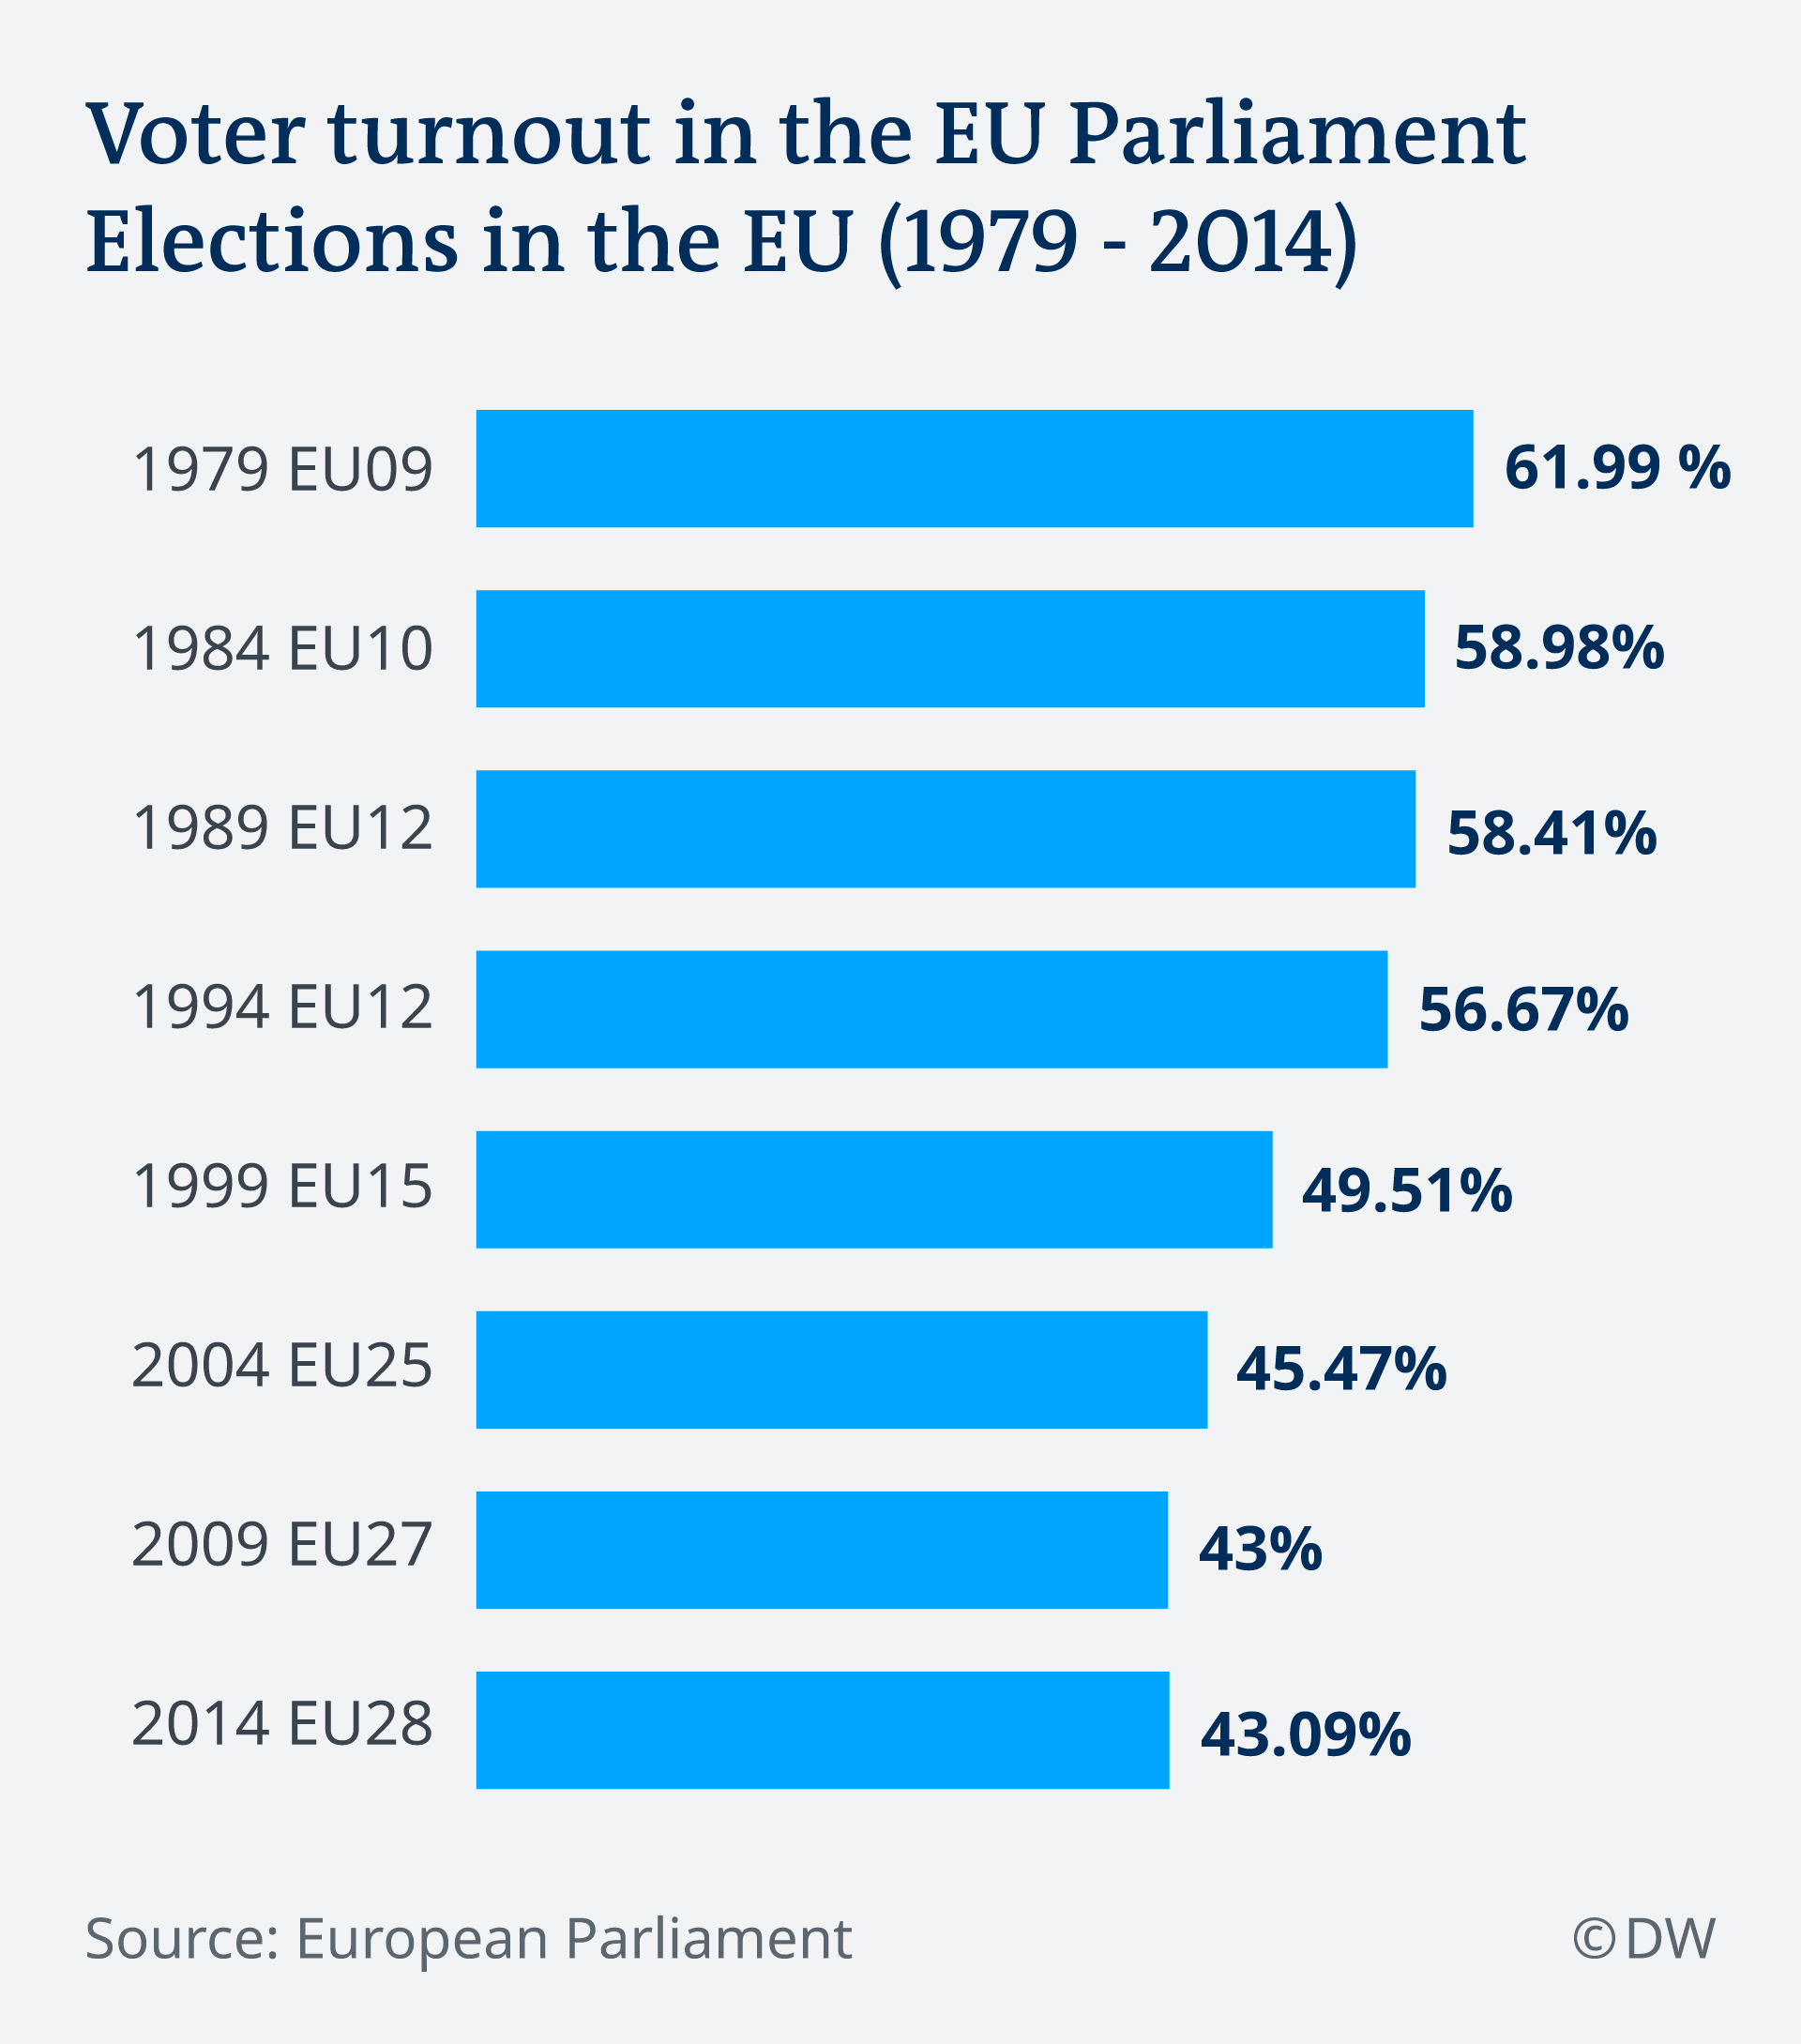 Graphic showing voter turnout from 1979 to 2014 in European Parliament elections